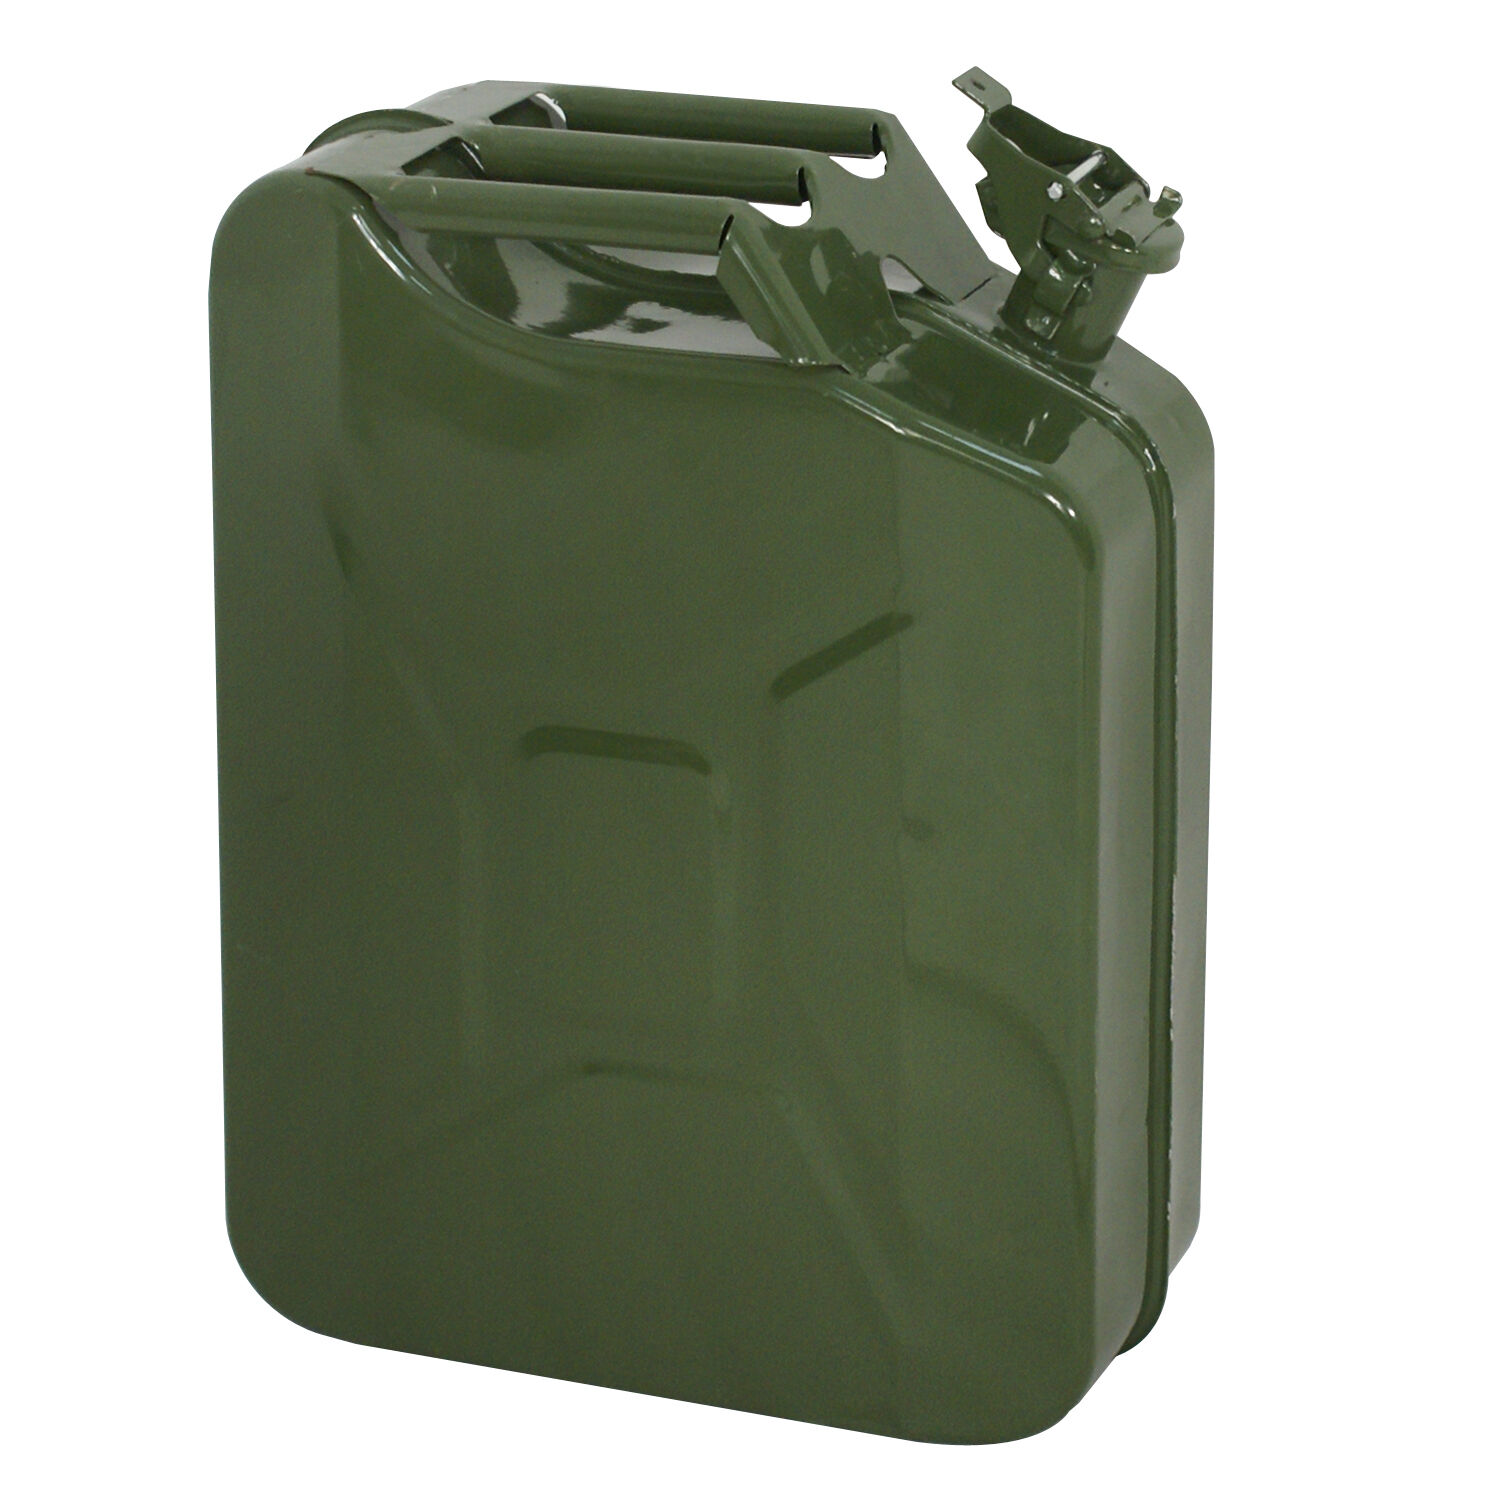 4X Jerry Can 20L Gas Gasoline Fuel Army Army Backup Metal Steel Tank 5 Gallon Business & Industrial